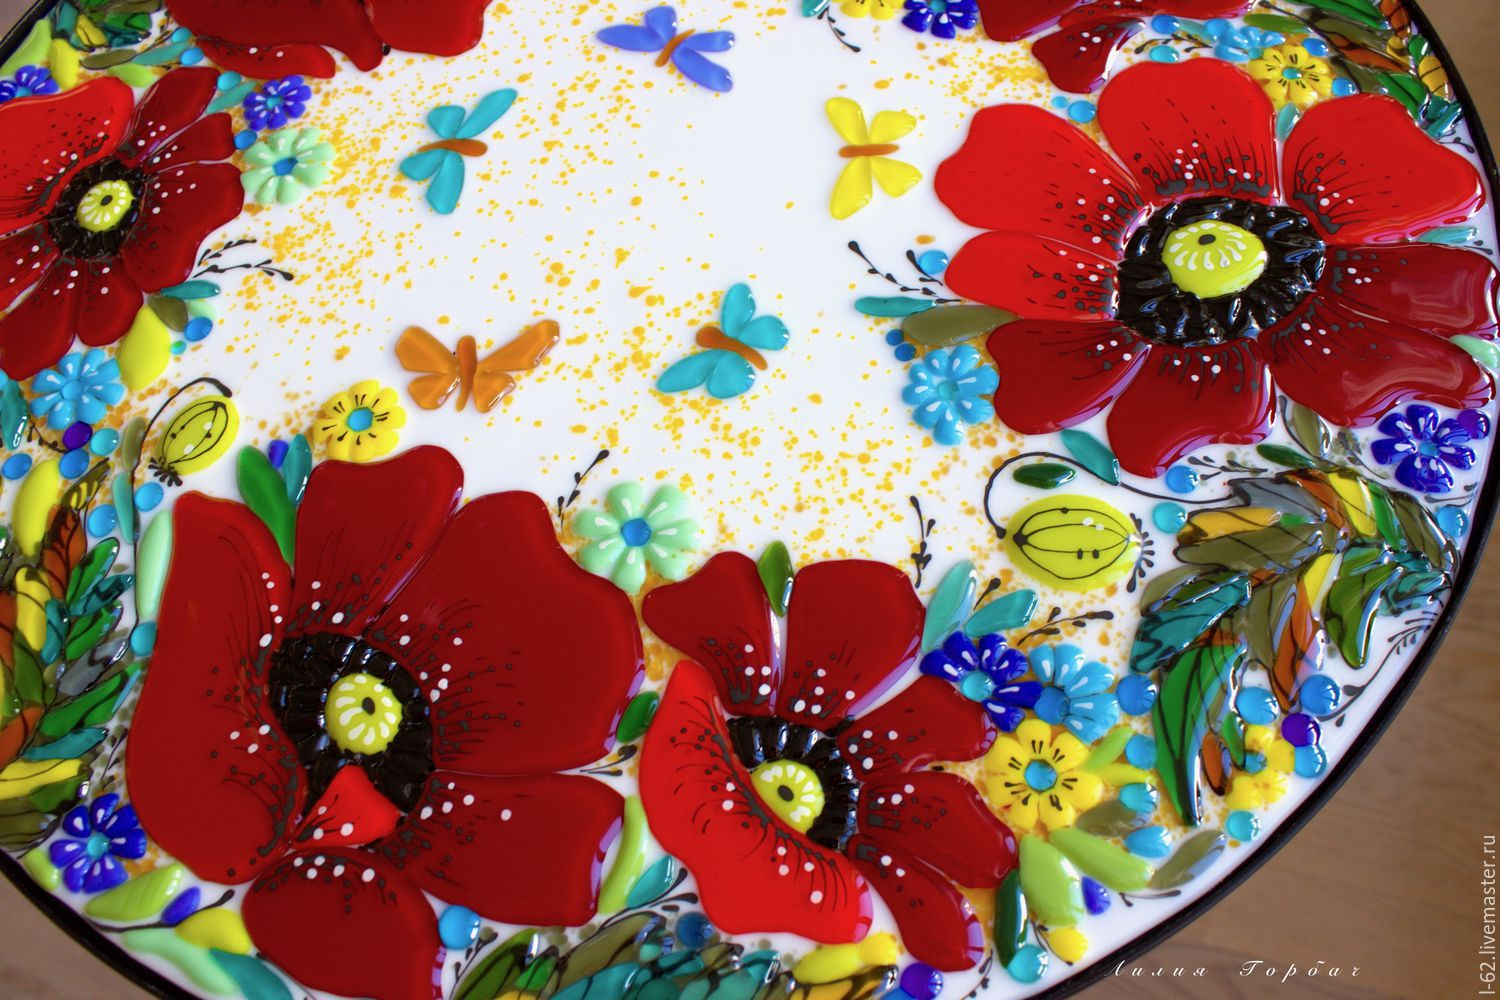 Table For Tea Ceremony Poppy Field Shop Online On Livemaster With